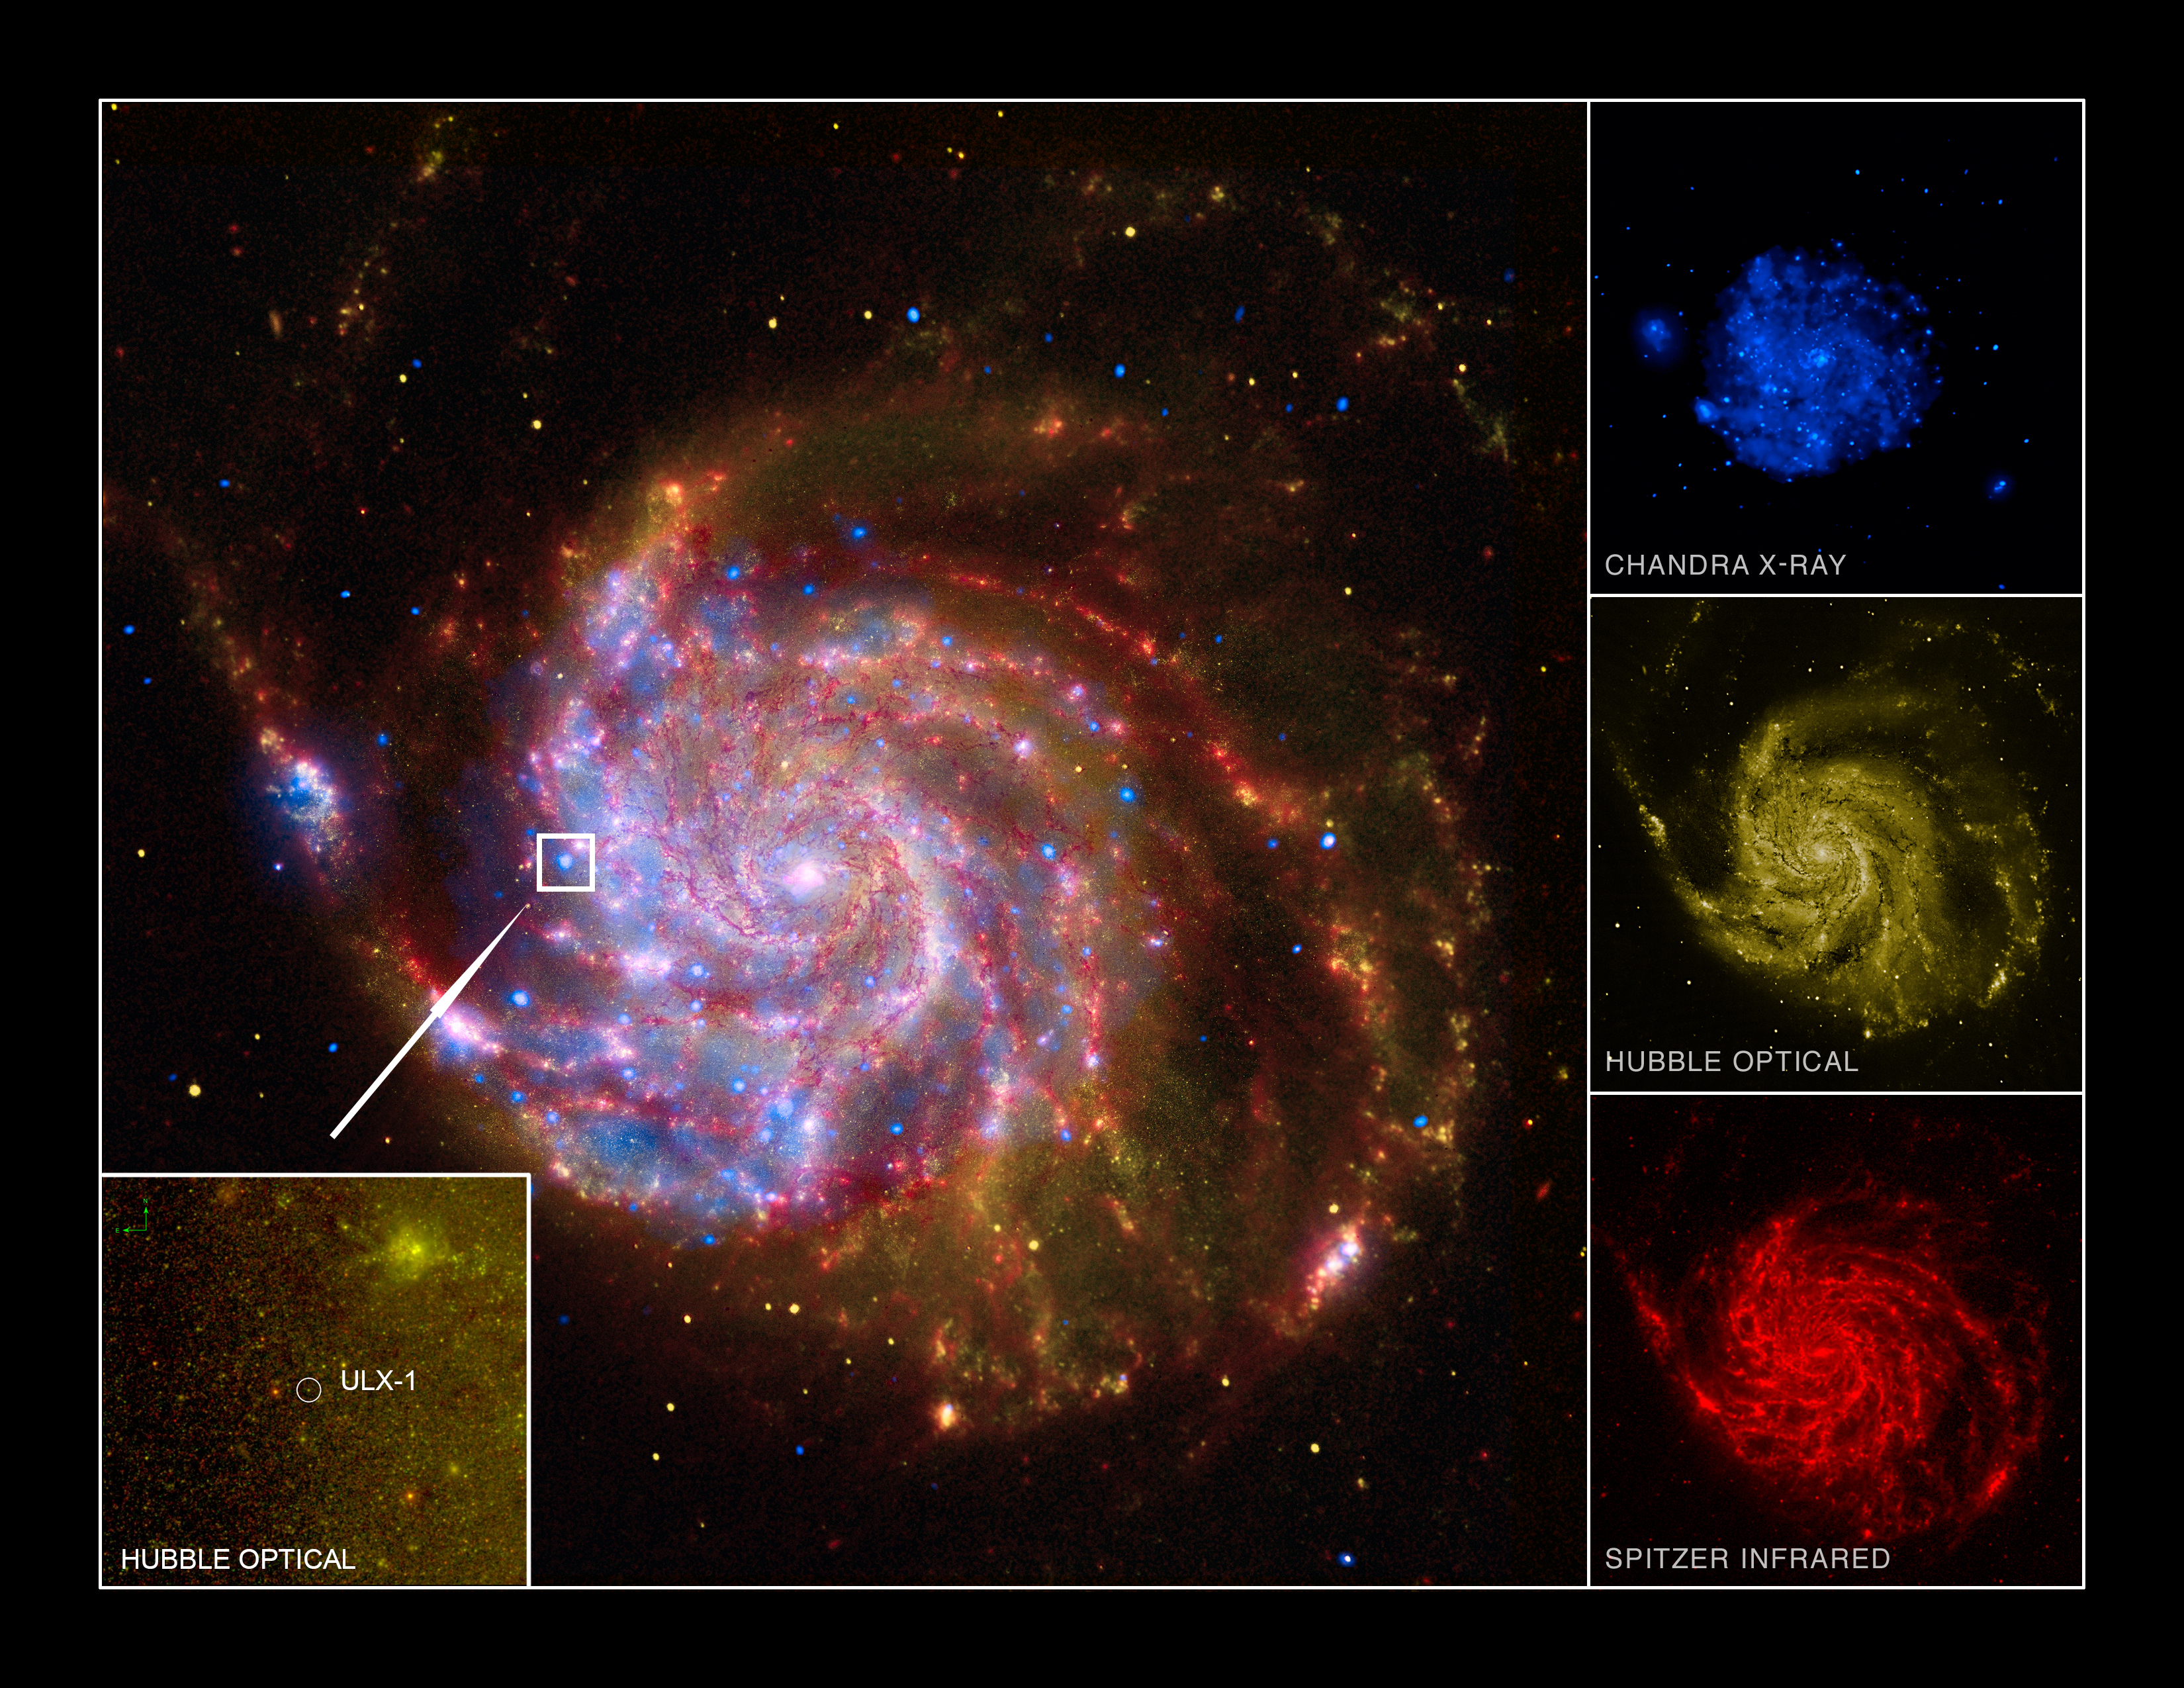 Astronomers have, for the first time, directly measured the mass of a mysterious source of X-ray light in the Pinwheel Galaxy, one of our nearest spiral neighbors. Turns out it's composed of an ultra-bright stellar-mass black hole and an orbiting star. Image credit: Jifeng Liu